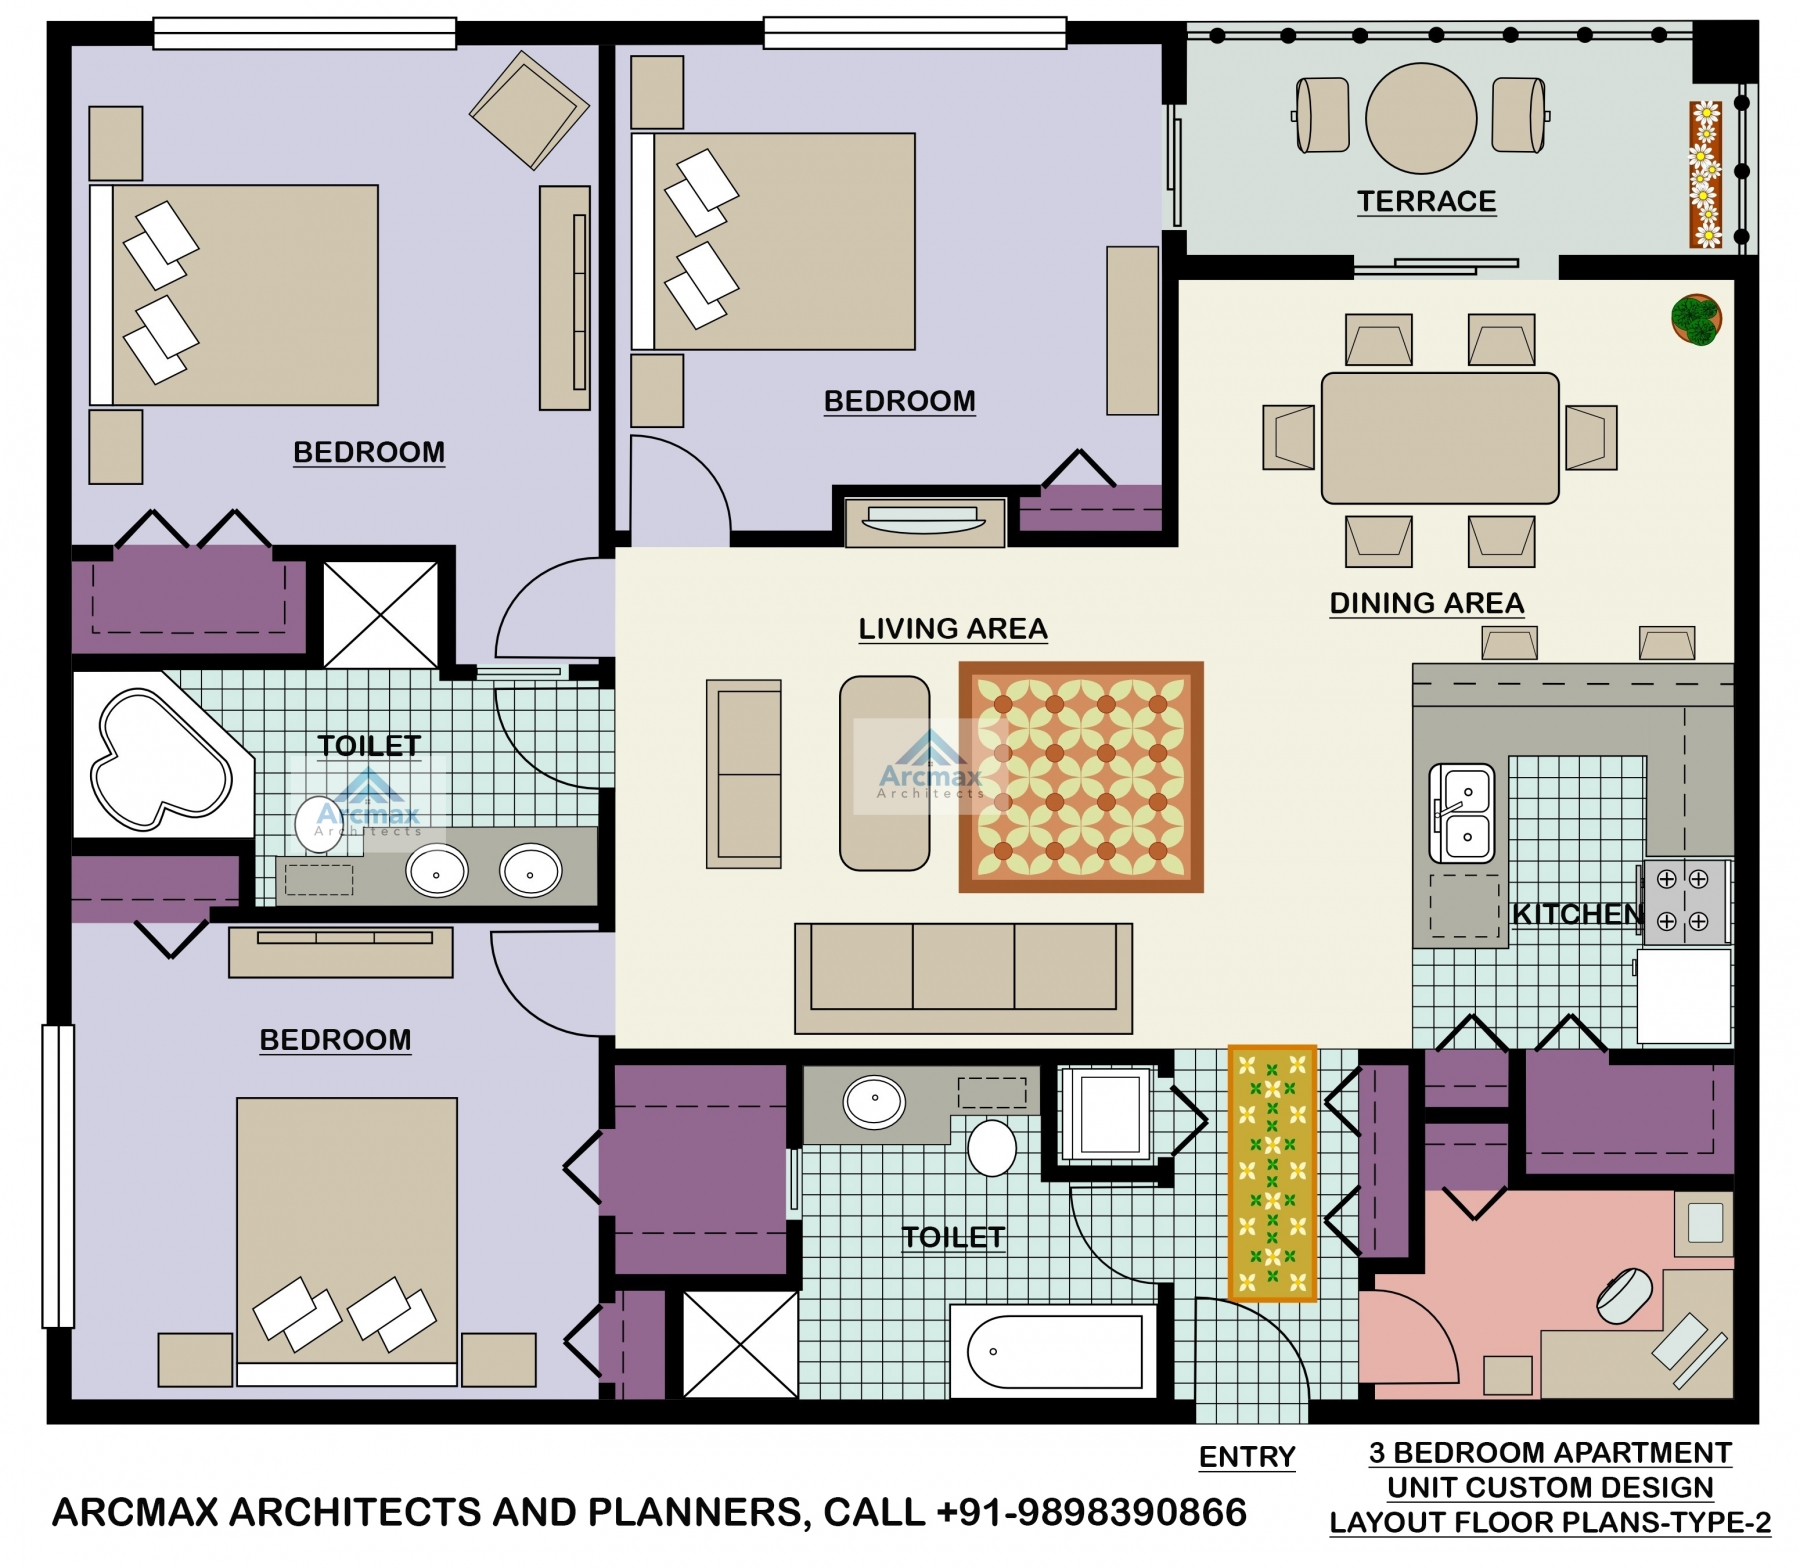 Apartment Layout: How To Build Your Dream Home?